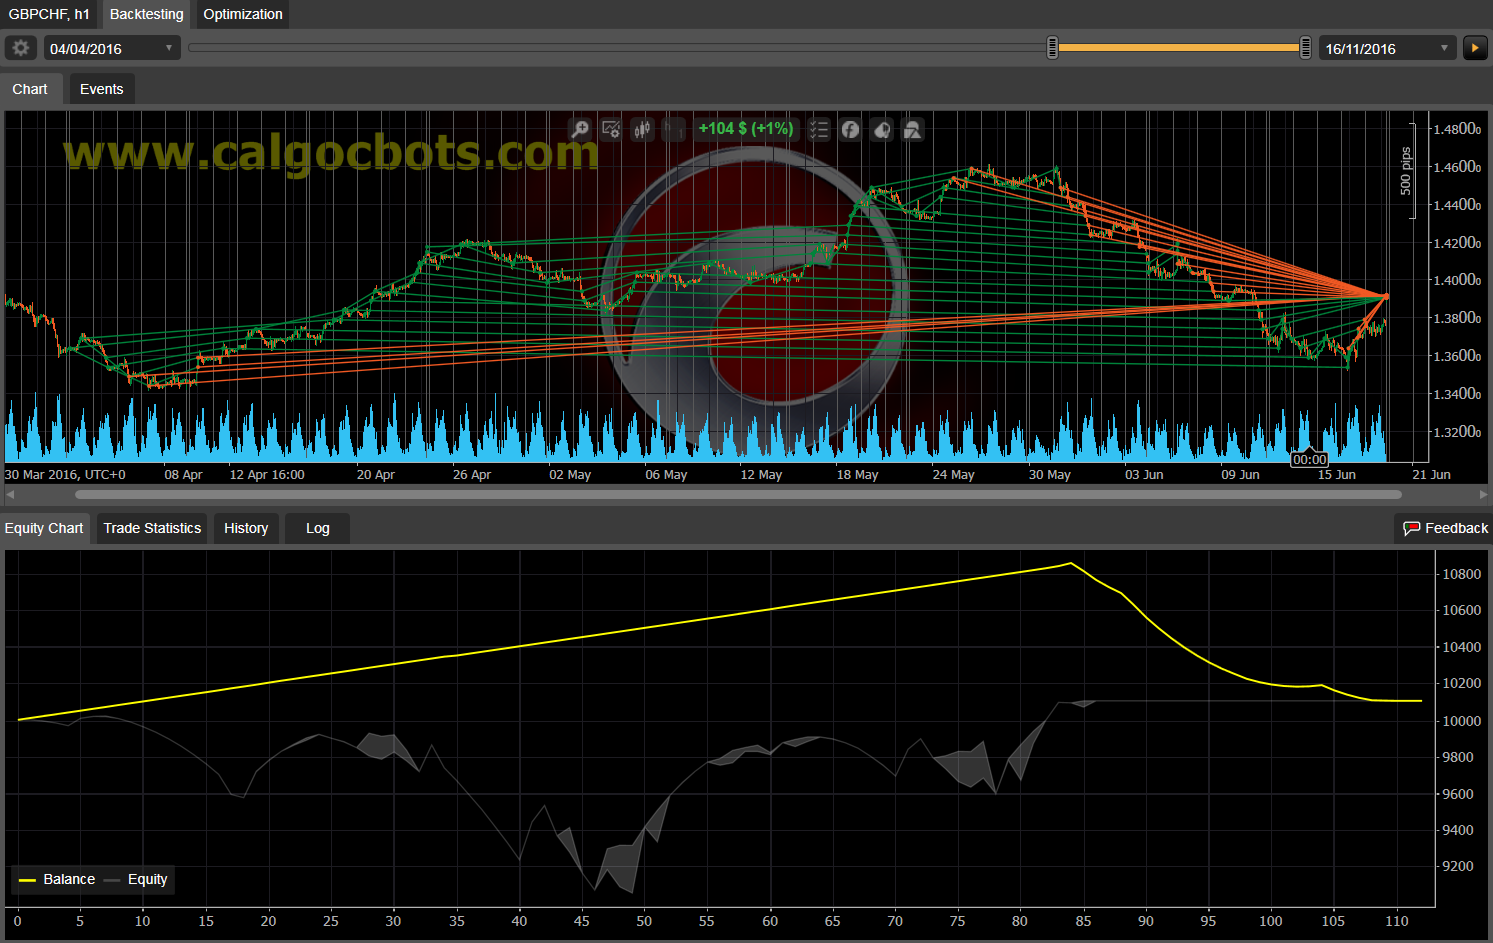 Dual Grid Hedge GBP CHF 1h cAlgo cBots cTrader 100 50 100 - 09